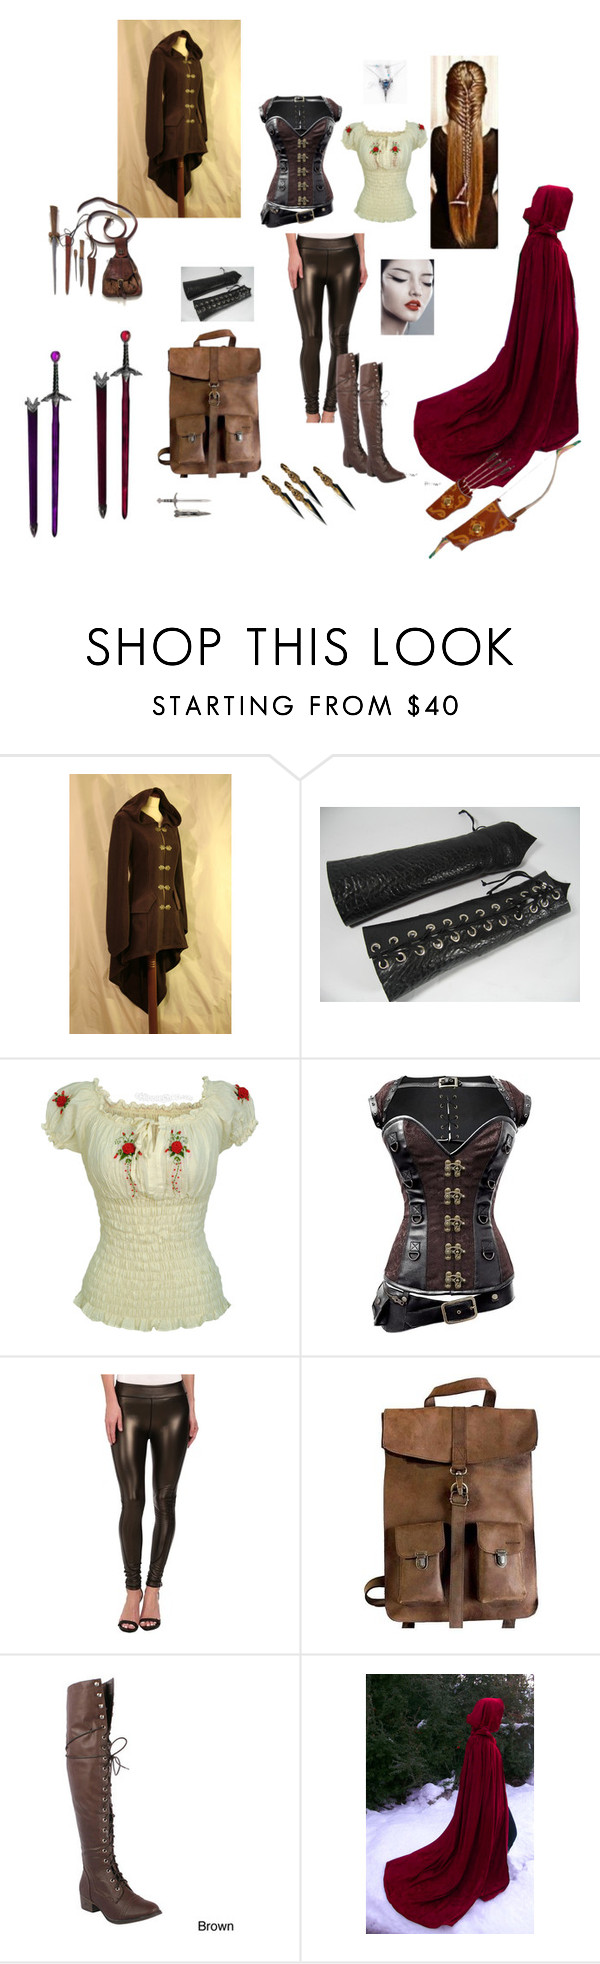 """""""Untitled #279"""" by alenamacys ❤ liked on Polyvore featuring Joe's Jeans and Kjøre Project"""